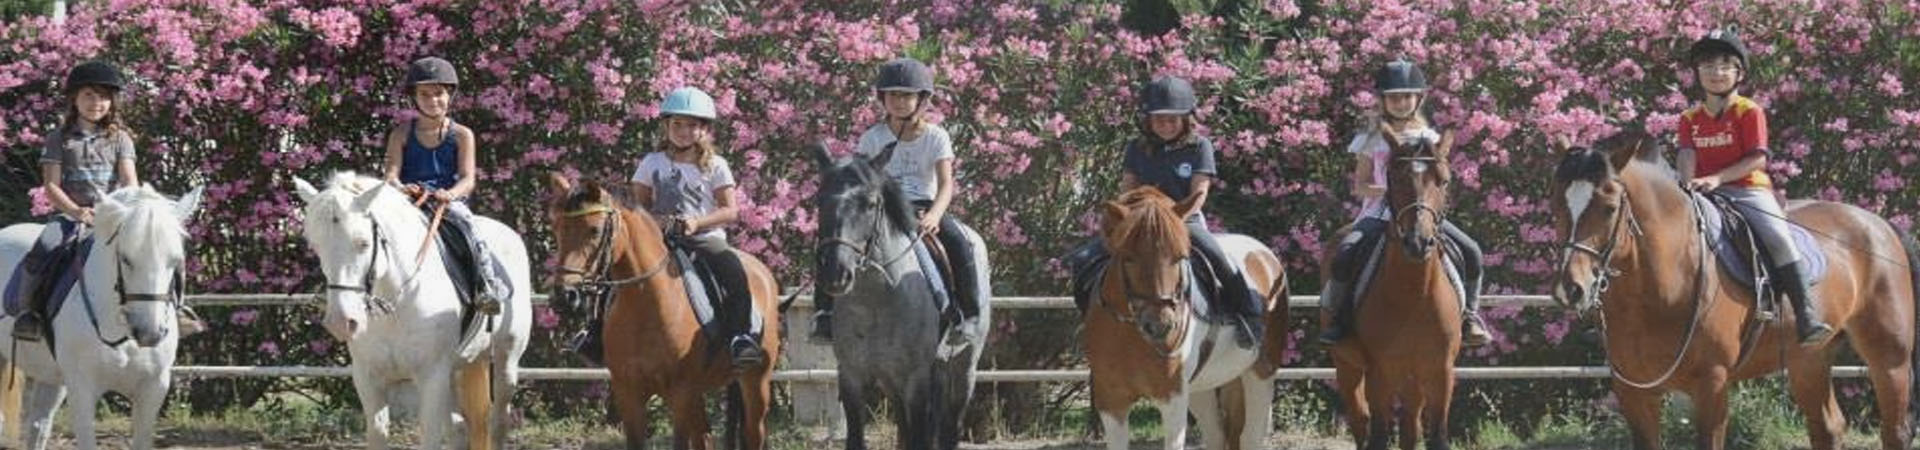 cheval poney club avignon